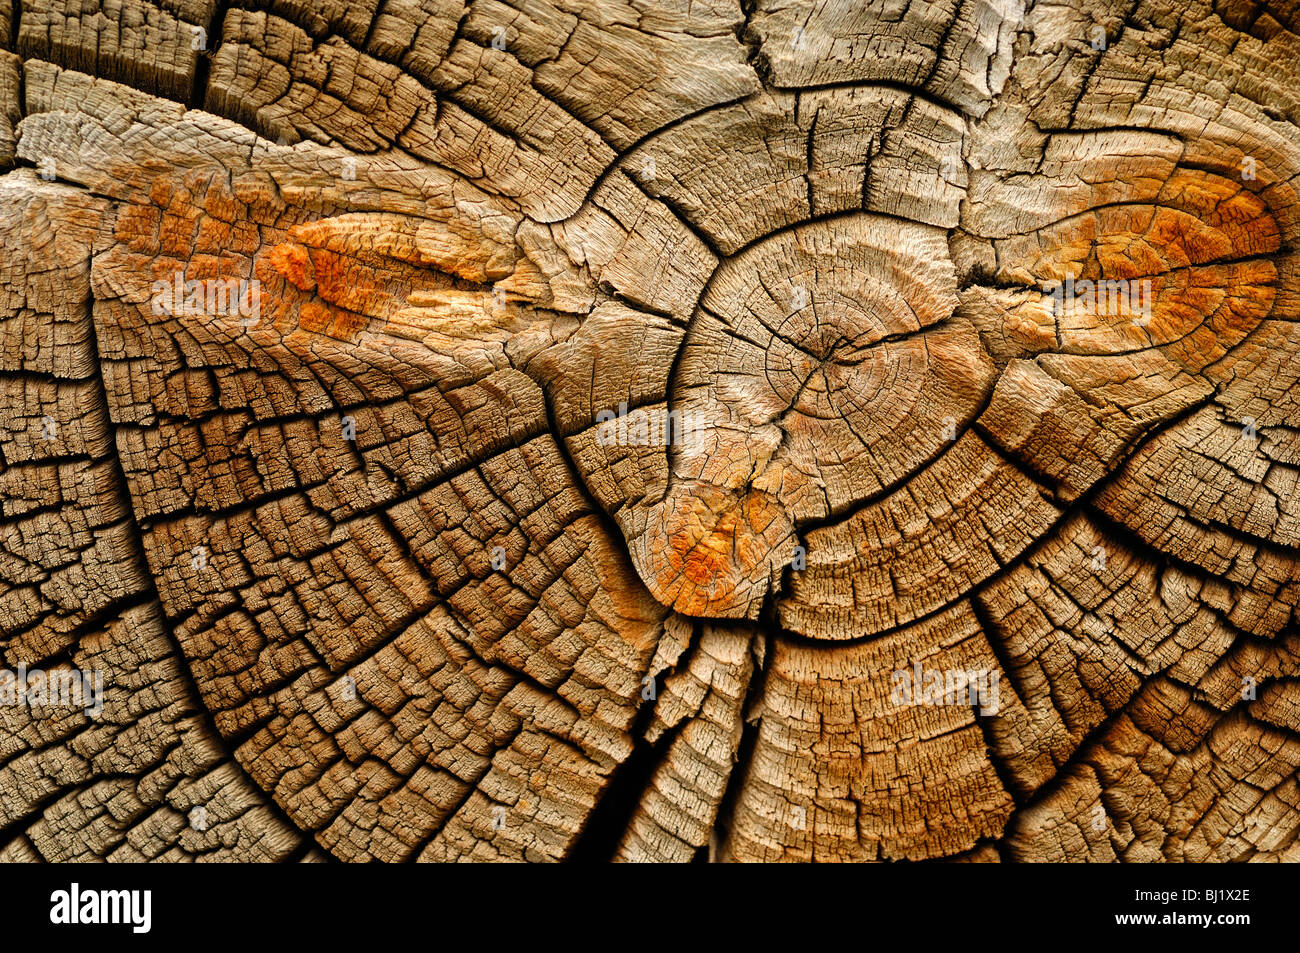 Close up of a log, part of the exterior of a log cabin at South Pass City, Wyoming, United States of America - Stock Image